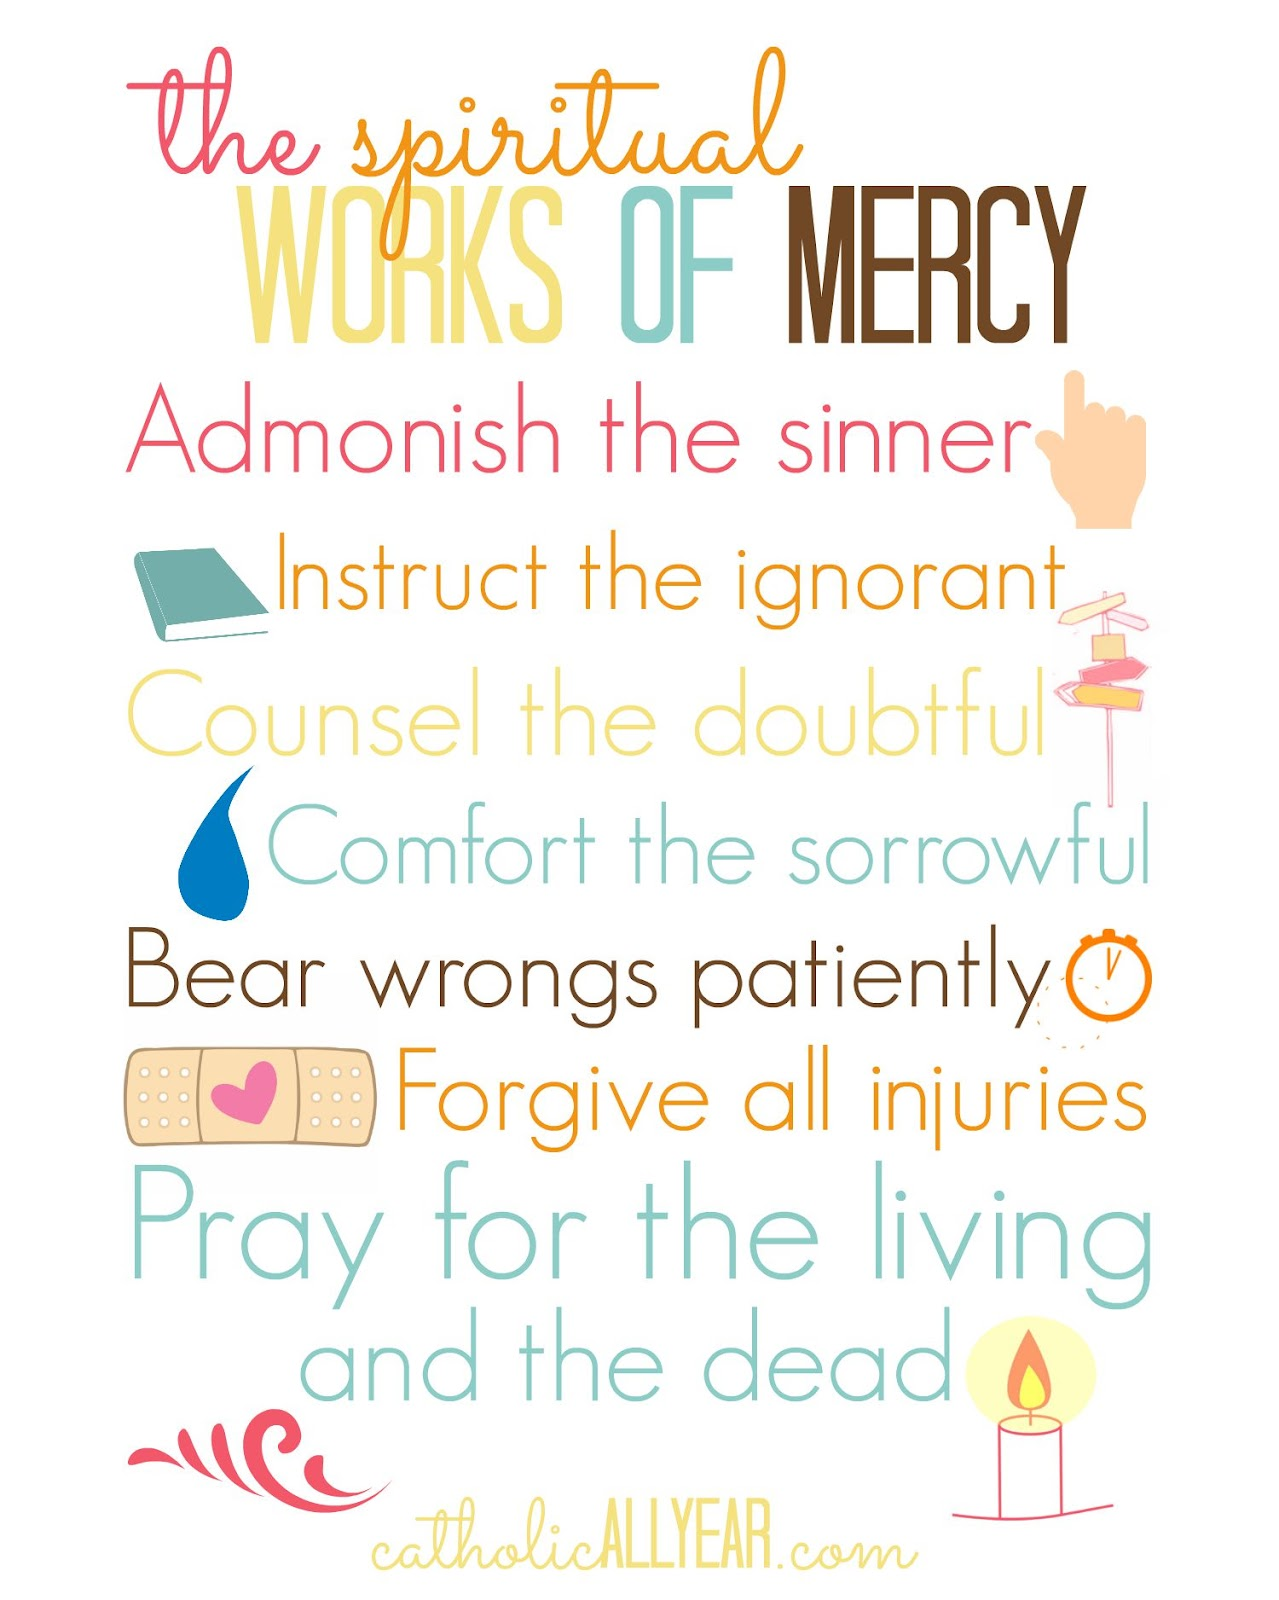 Catholic All Year The Year of Mercy Family Challenge – Corporal and Spiritual Works of Mercy Worksheet